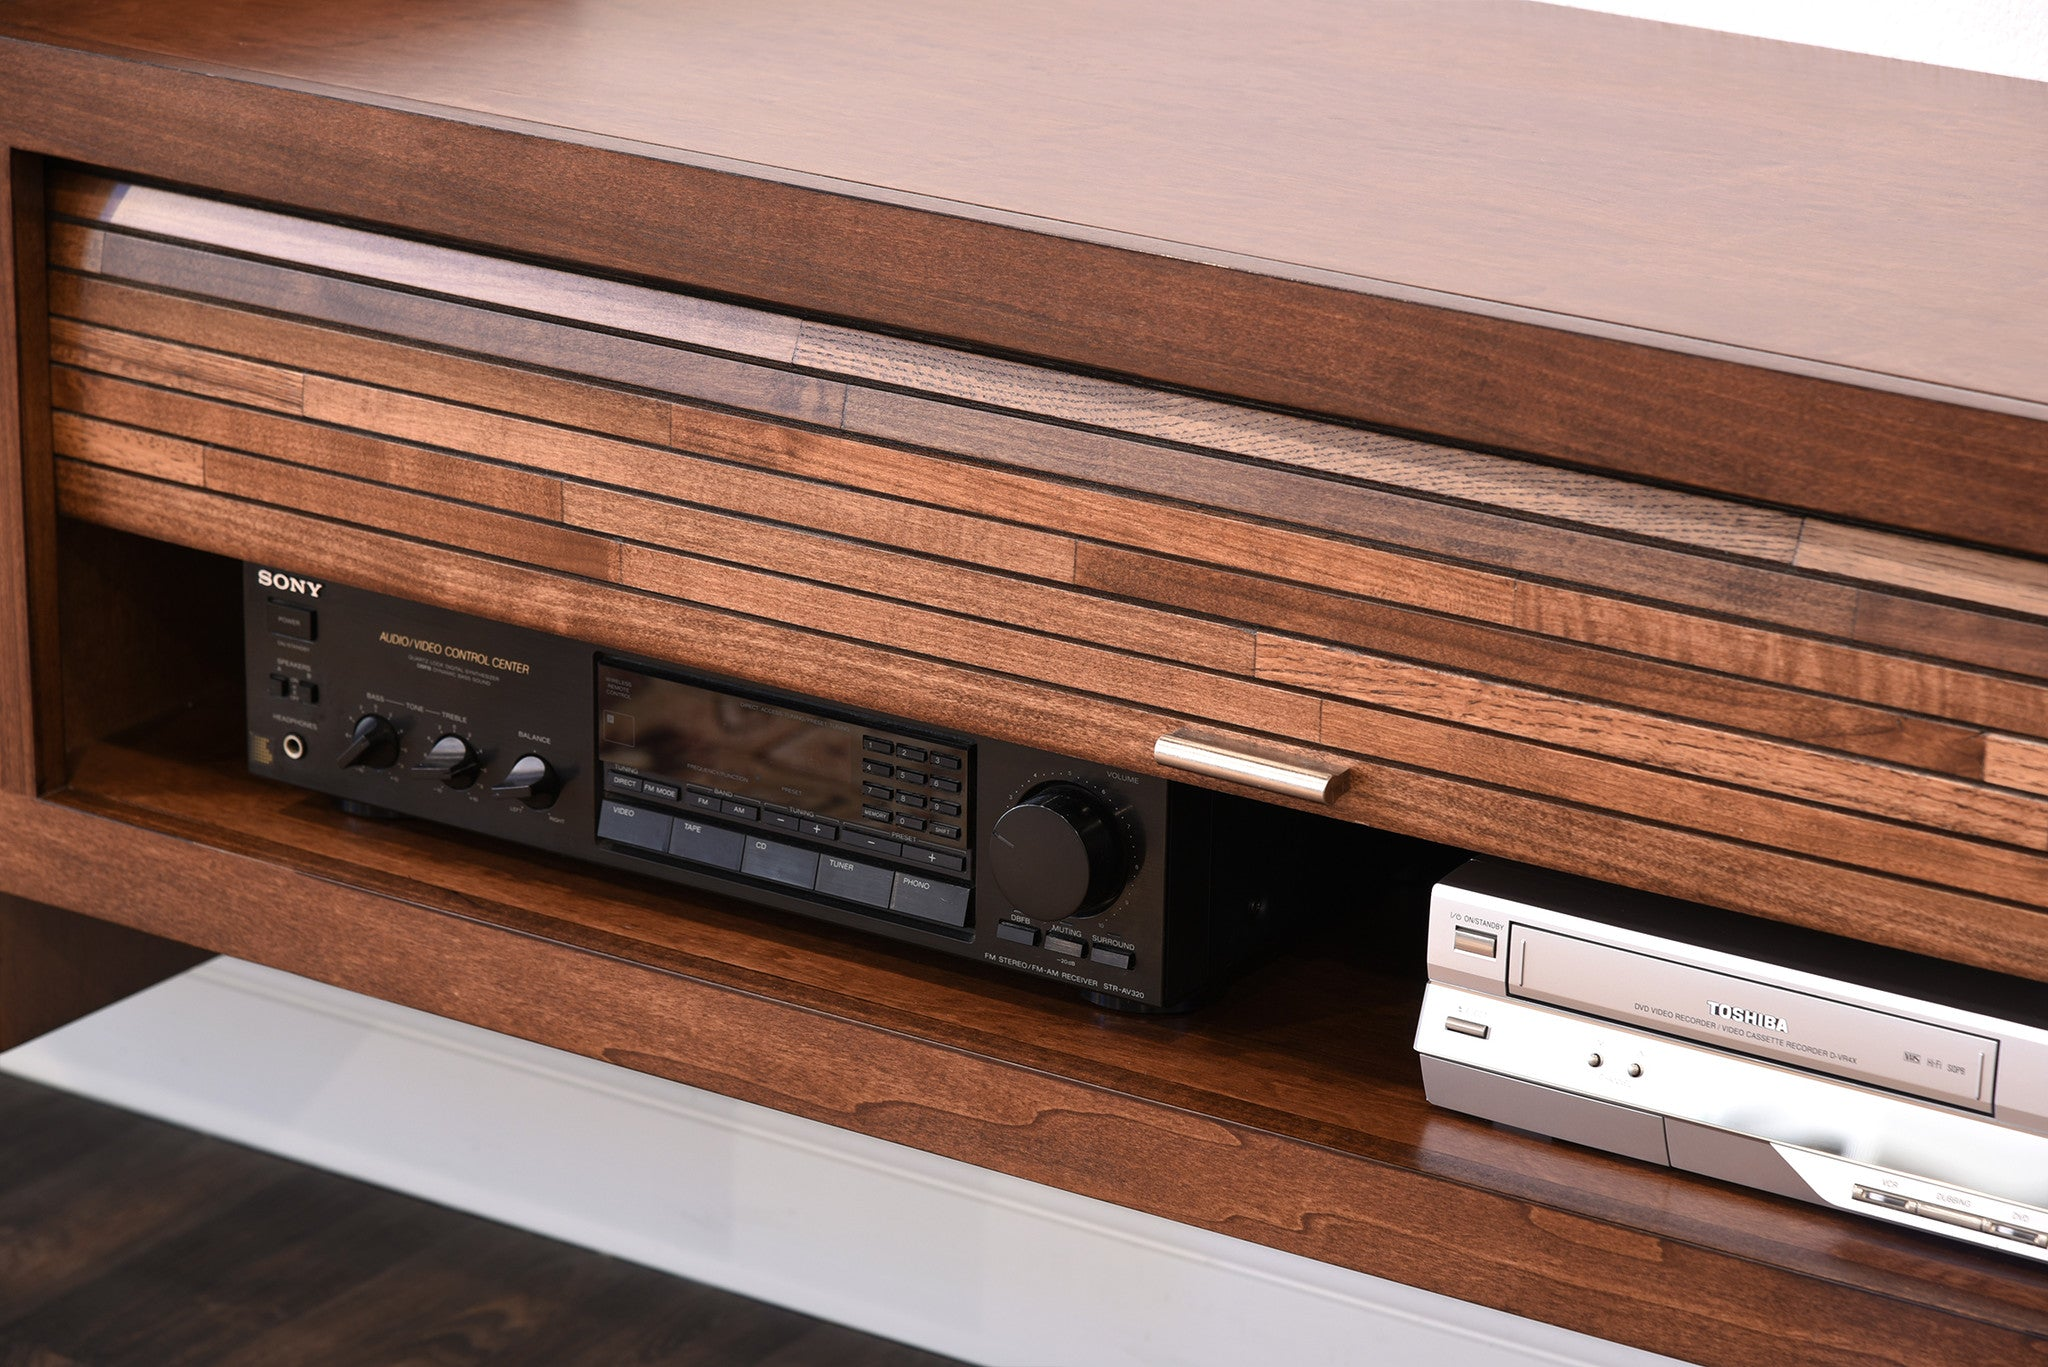 Fireplace TV Stands & Floating Wall Mount Consoles - Woodwaves